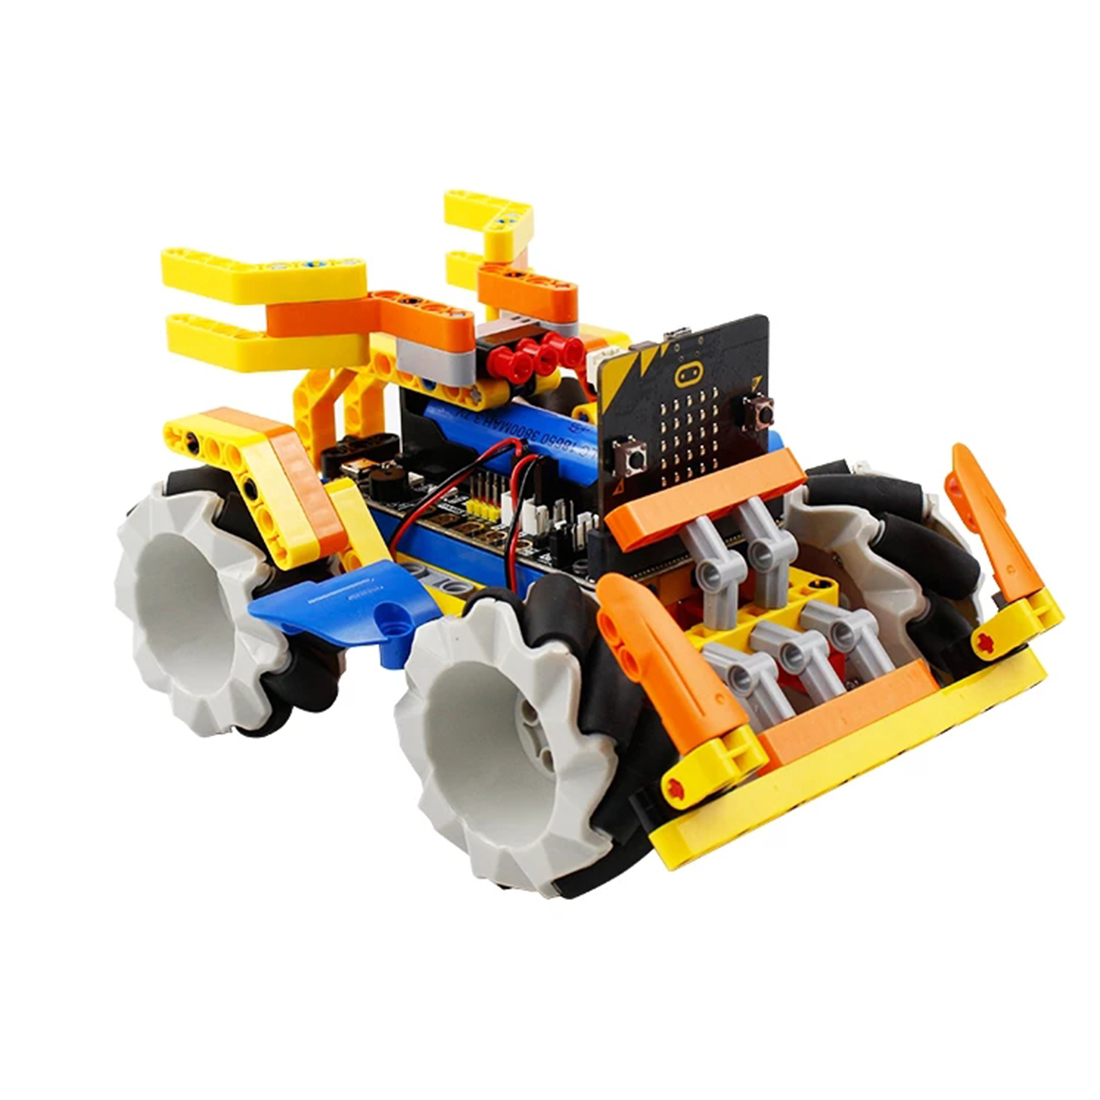 Program Intelligent Robot Building Block Kit Mecanum Wheel Robot Car For Micro: Bit (No Micro:bit Board)